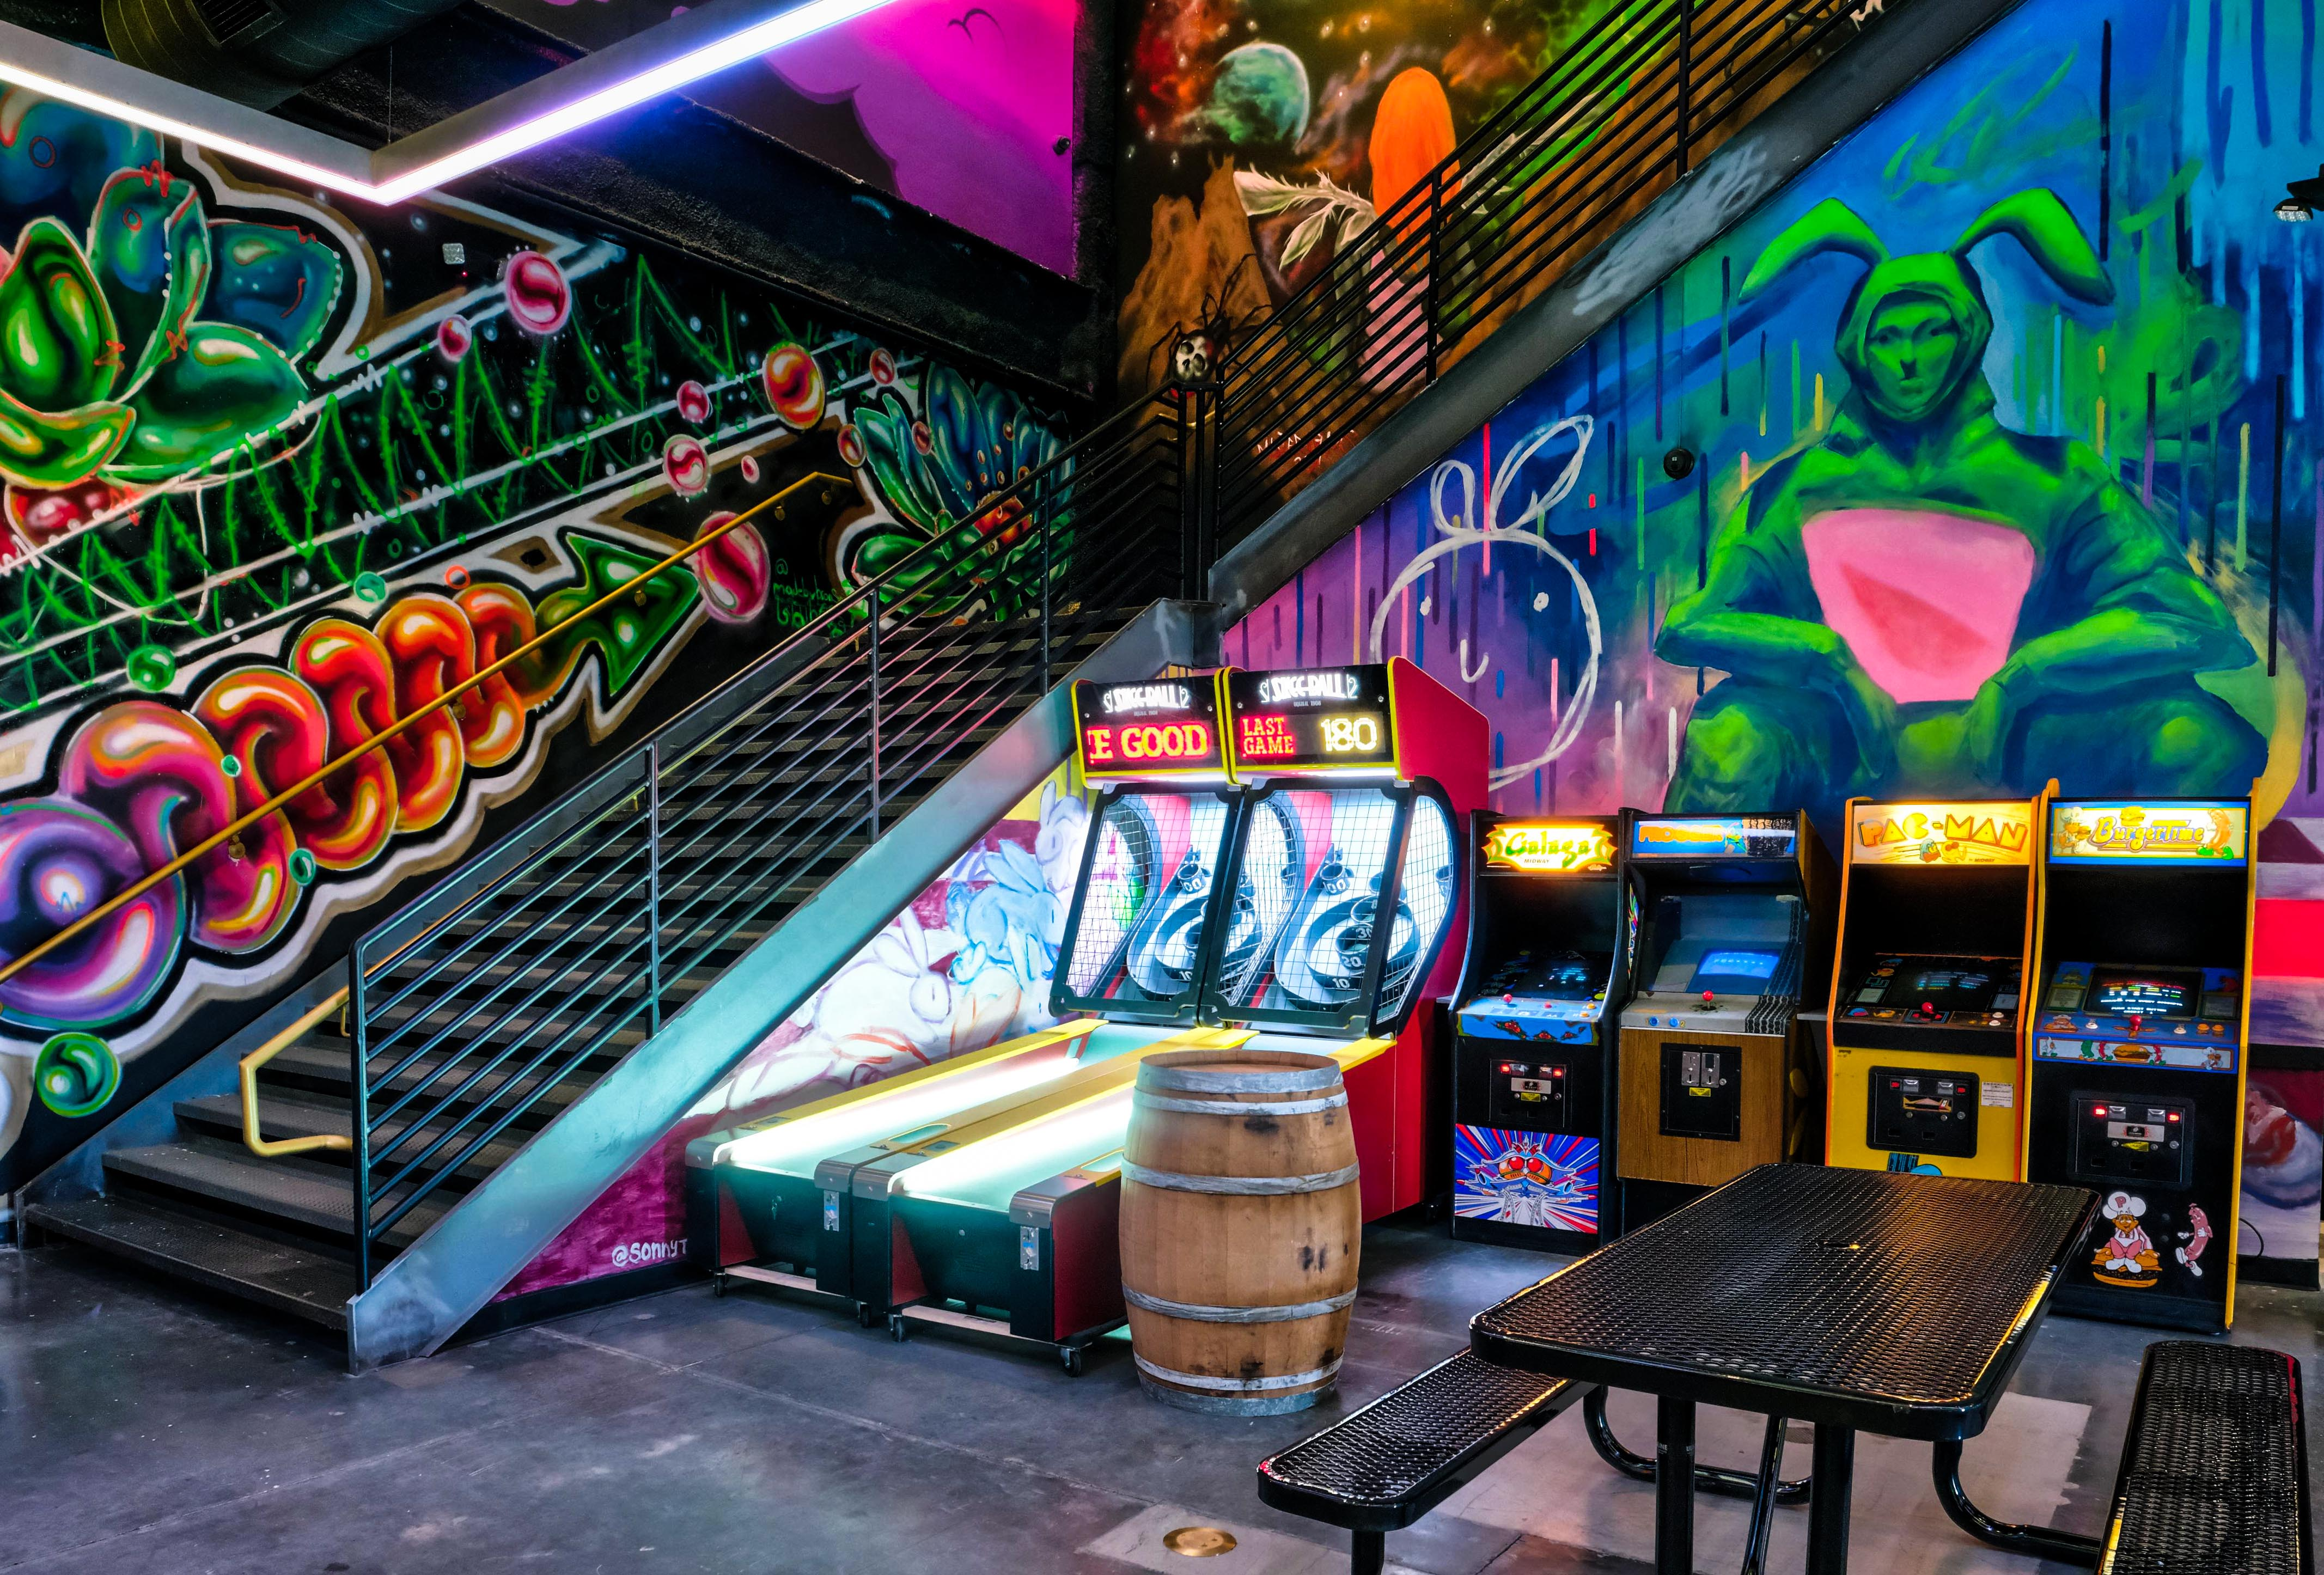 A graffiti-lined staircase with video games and a metal picnic table at Emporium Arcade Bar